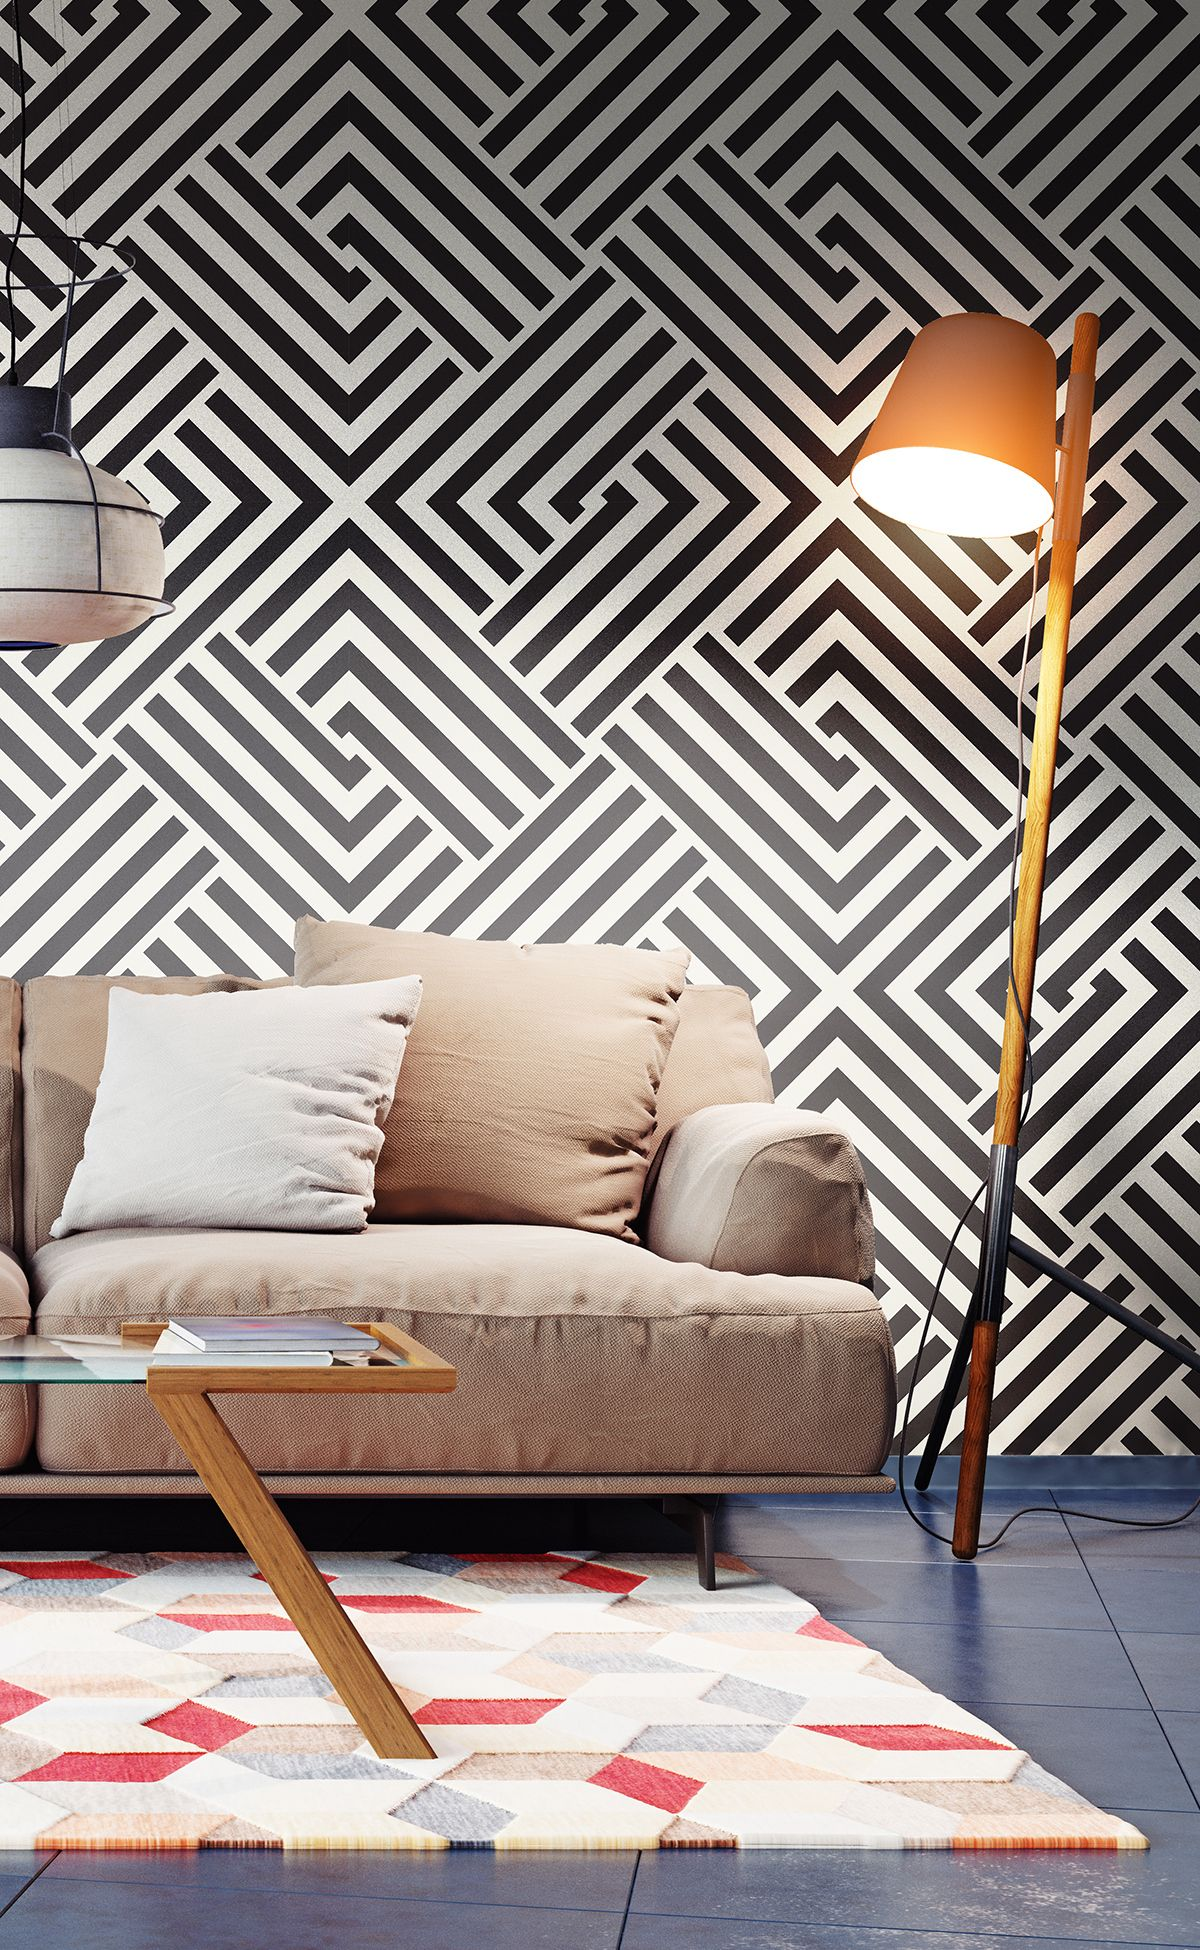 Black And White Cross Fabric Removable Wallpaper 5497 In